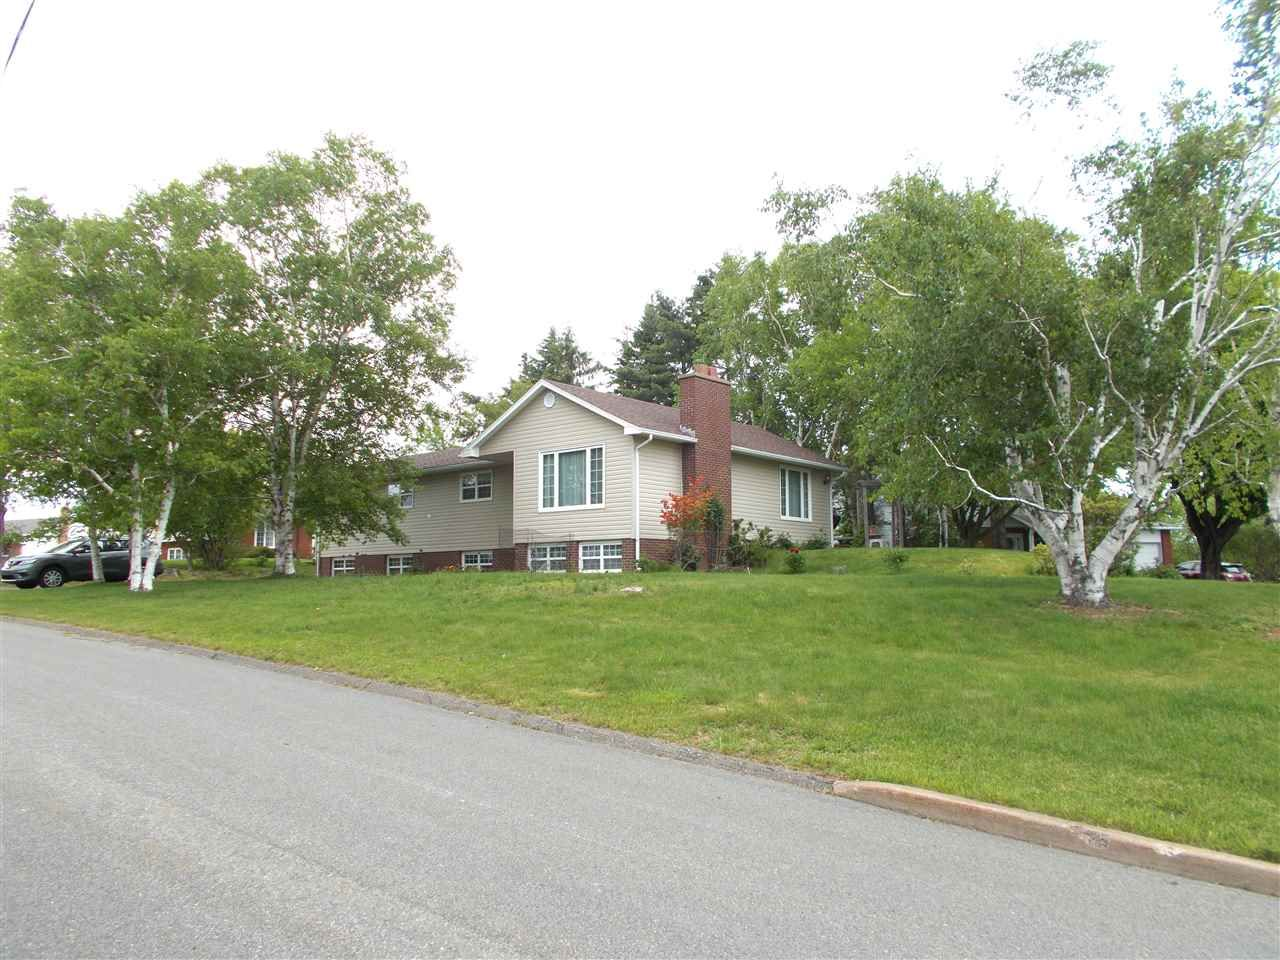 Main Photo: 423 Essex Drive in New Glasgow: 106-New Glasgow, Stellarton Residential for sale (Northern Region)  : MLS®# 202015873